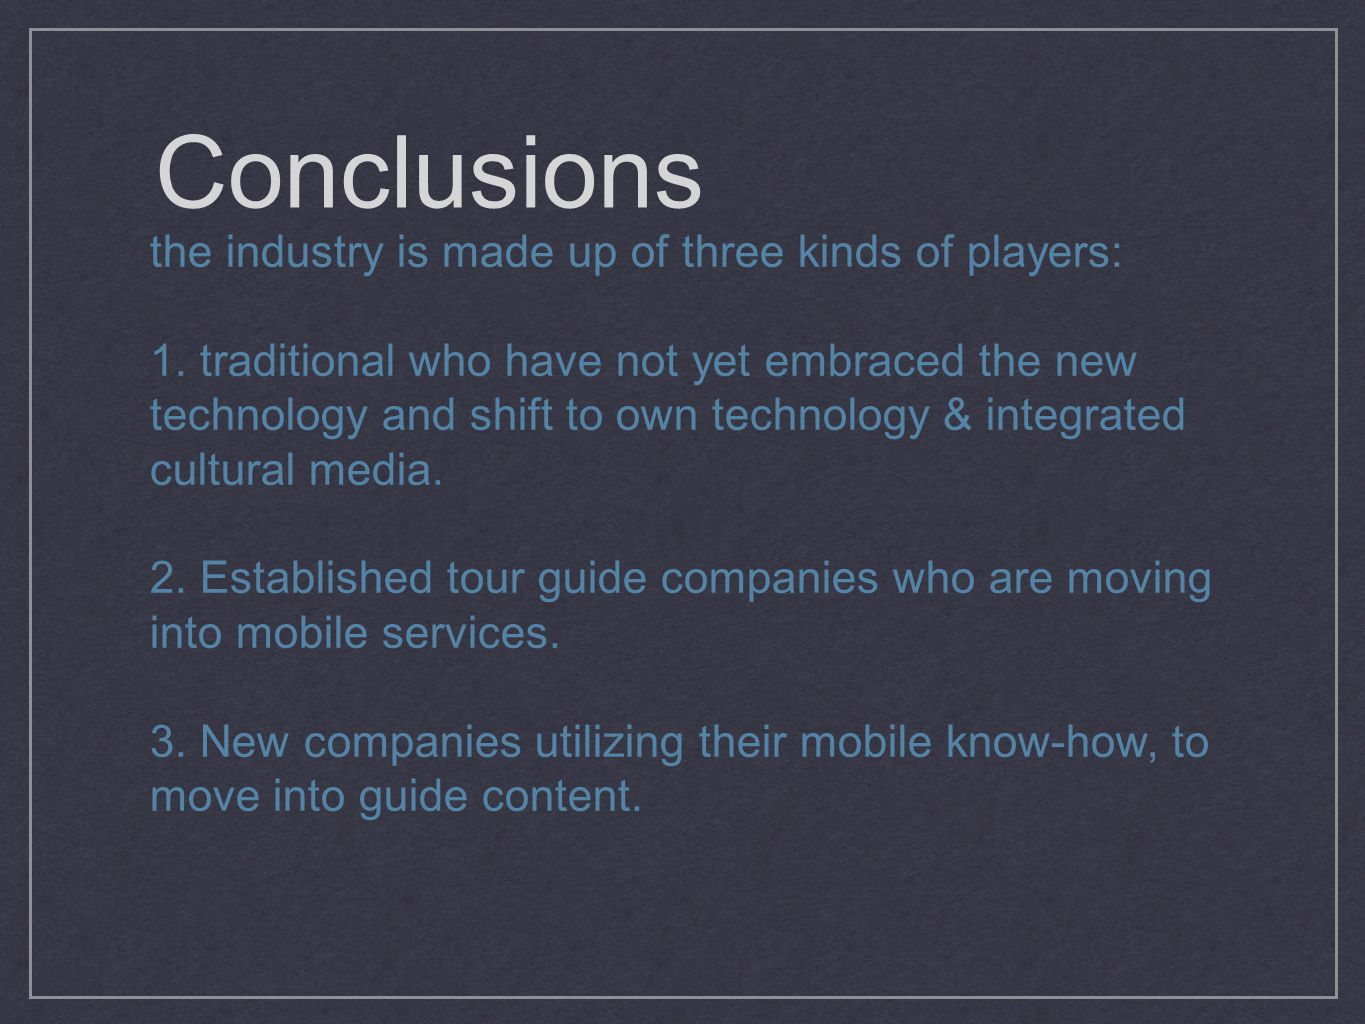 Conclusions the industry is made up of three kinds of players: 1. traditional who have not yet embraced the new technology and shift to own technology